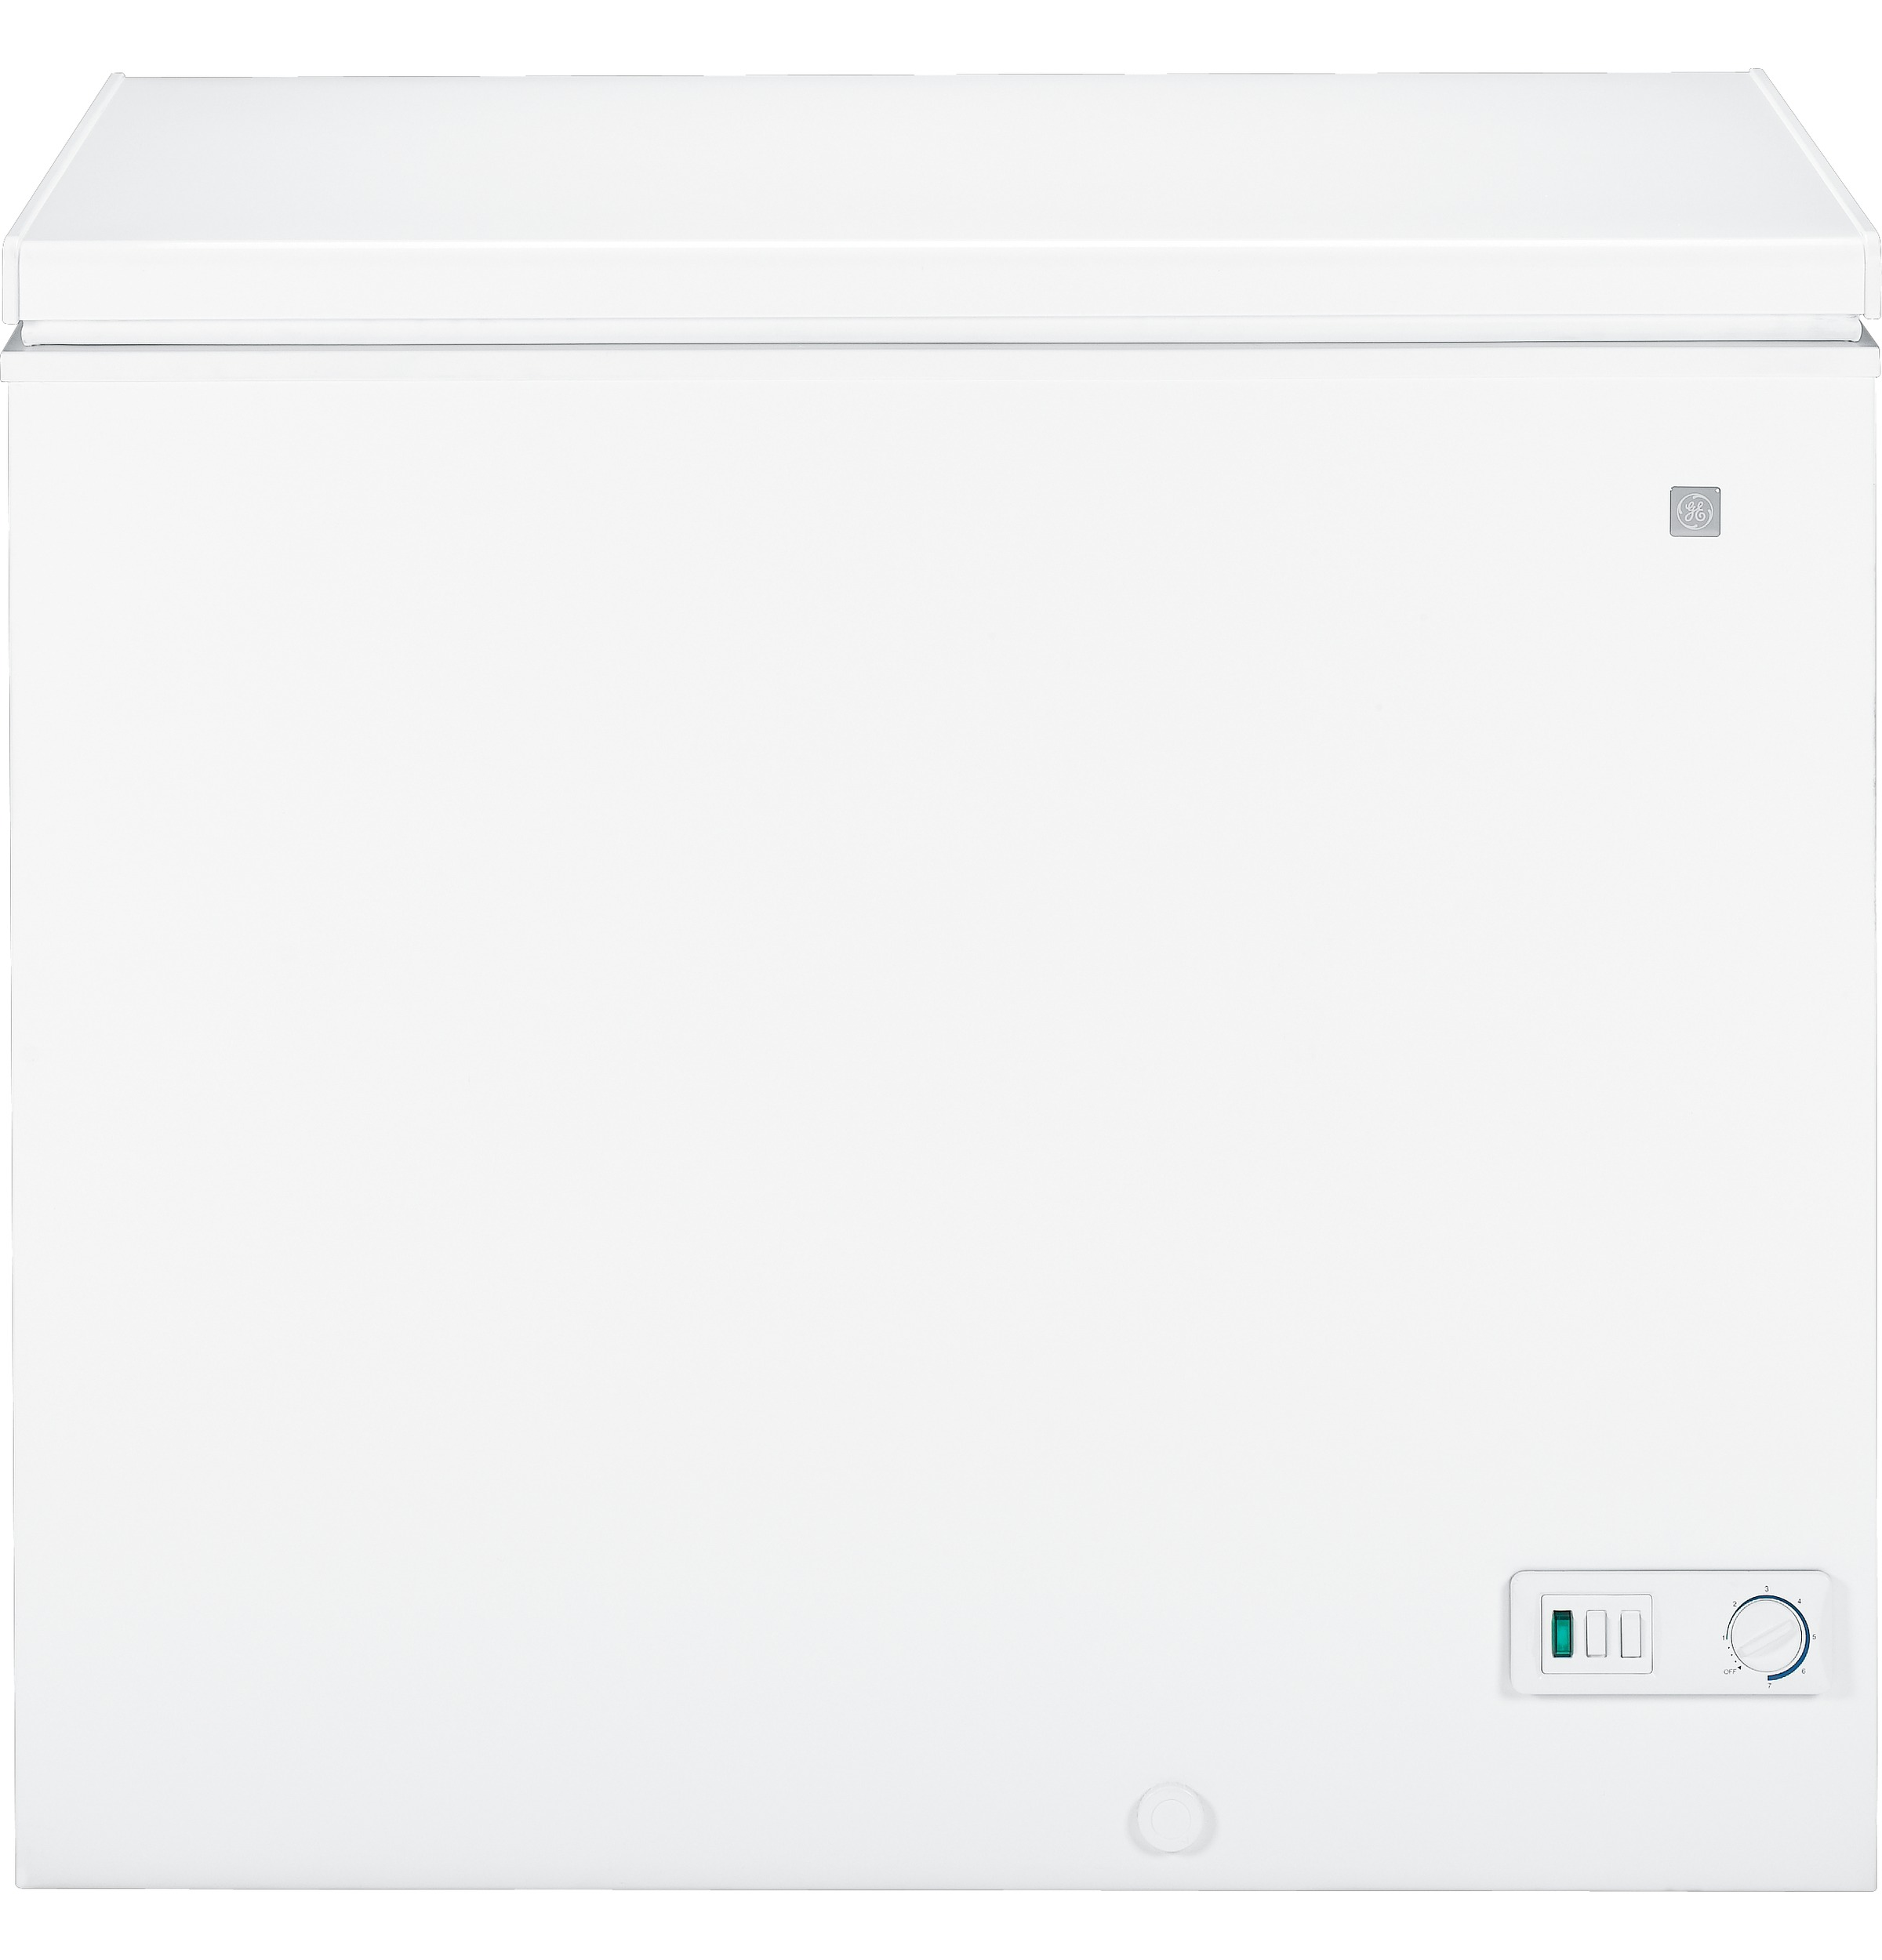 ge® 7 0 cu ft manual defrost chest zer fcm7suww ge product image product image product image